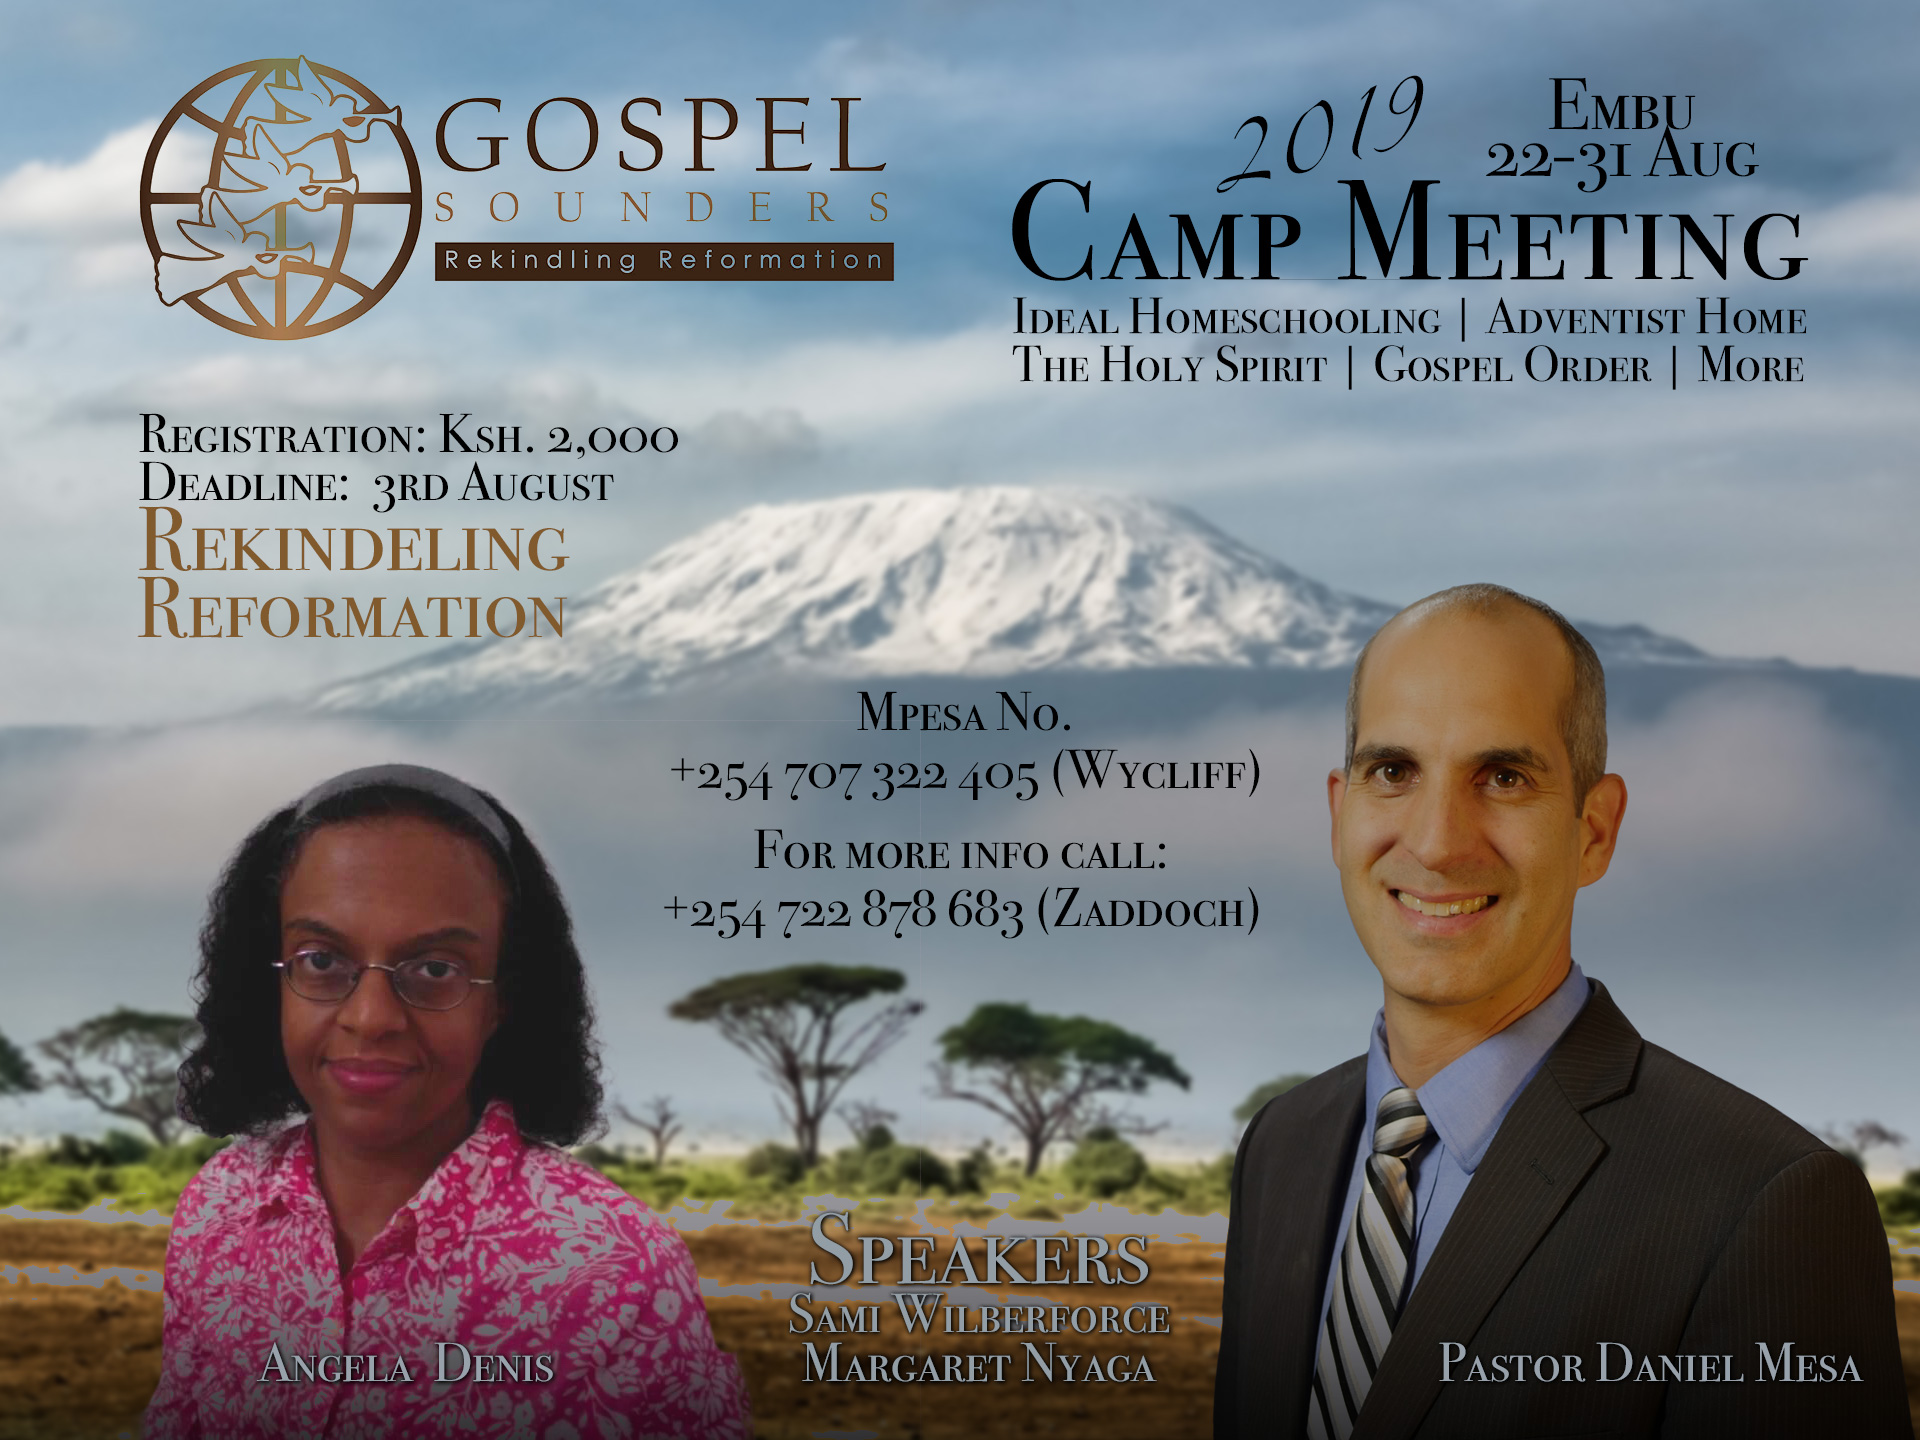 Gospel Sounders Camp Meeting Image for 2019